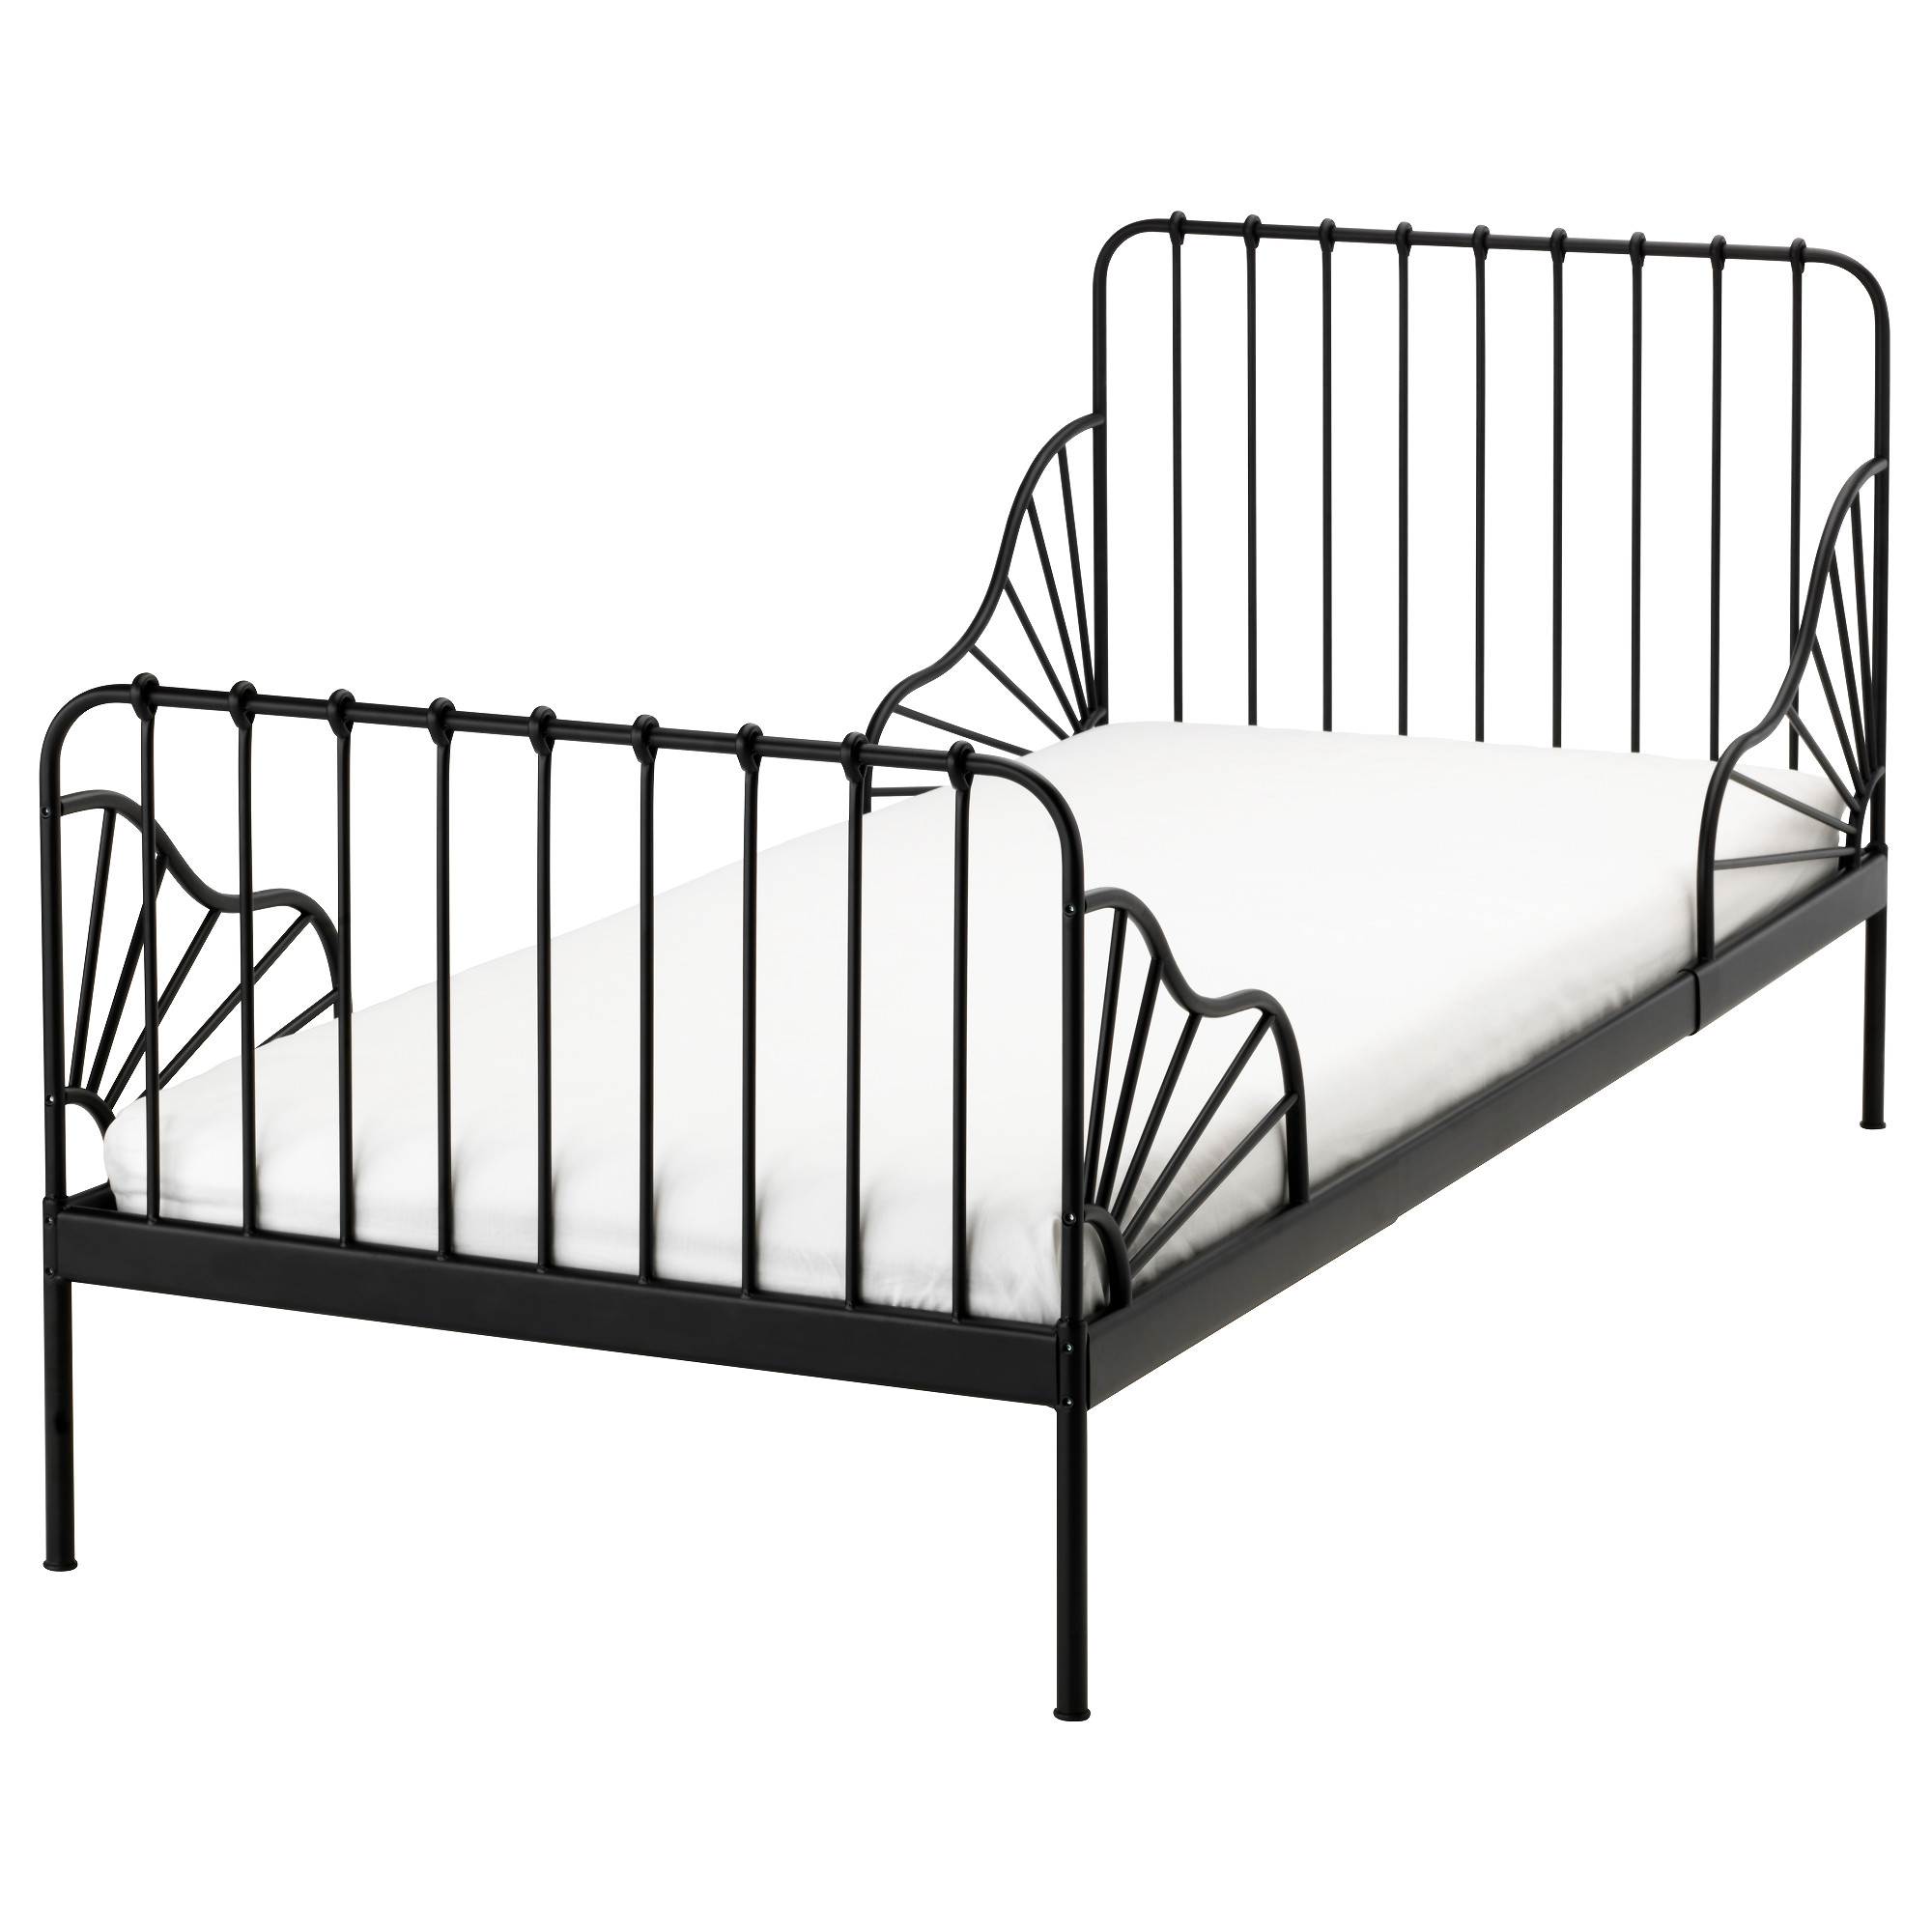 Picture of: Minnen Ext Bed Frame With Slatted Bed Base Black Ikea Hong Kong And Macau